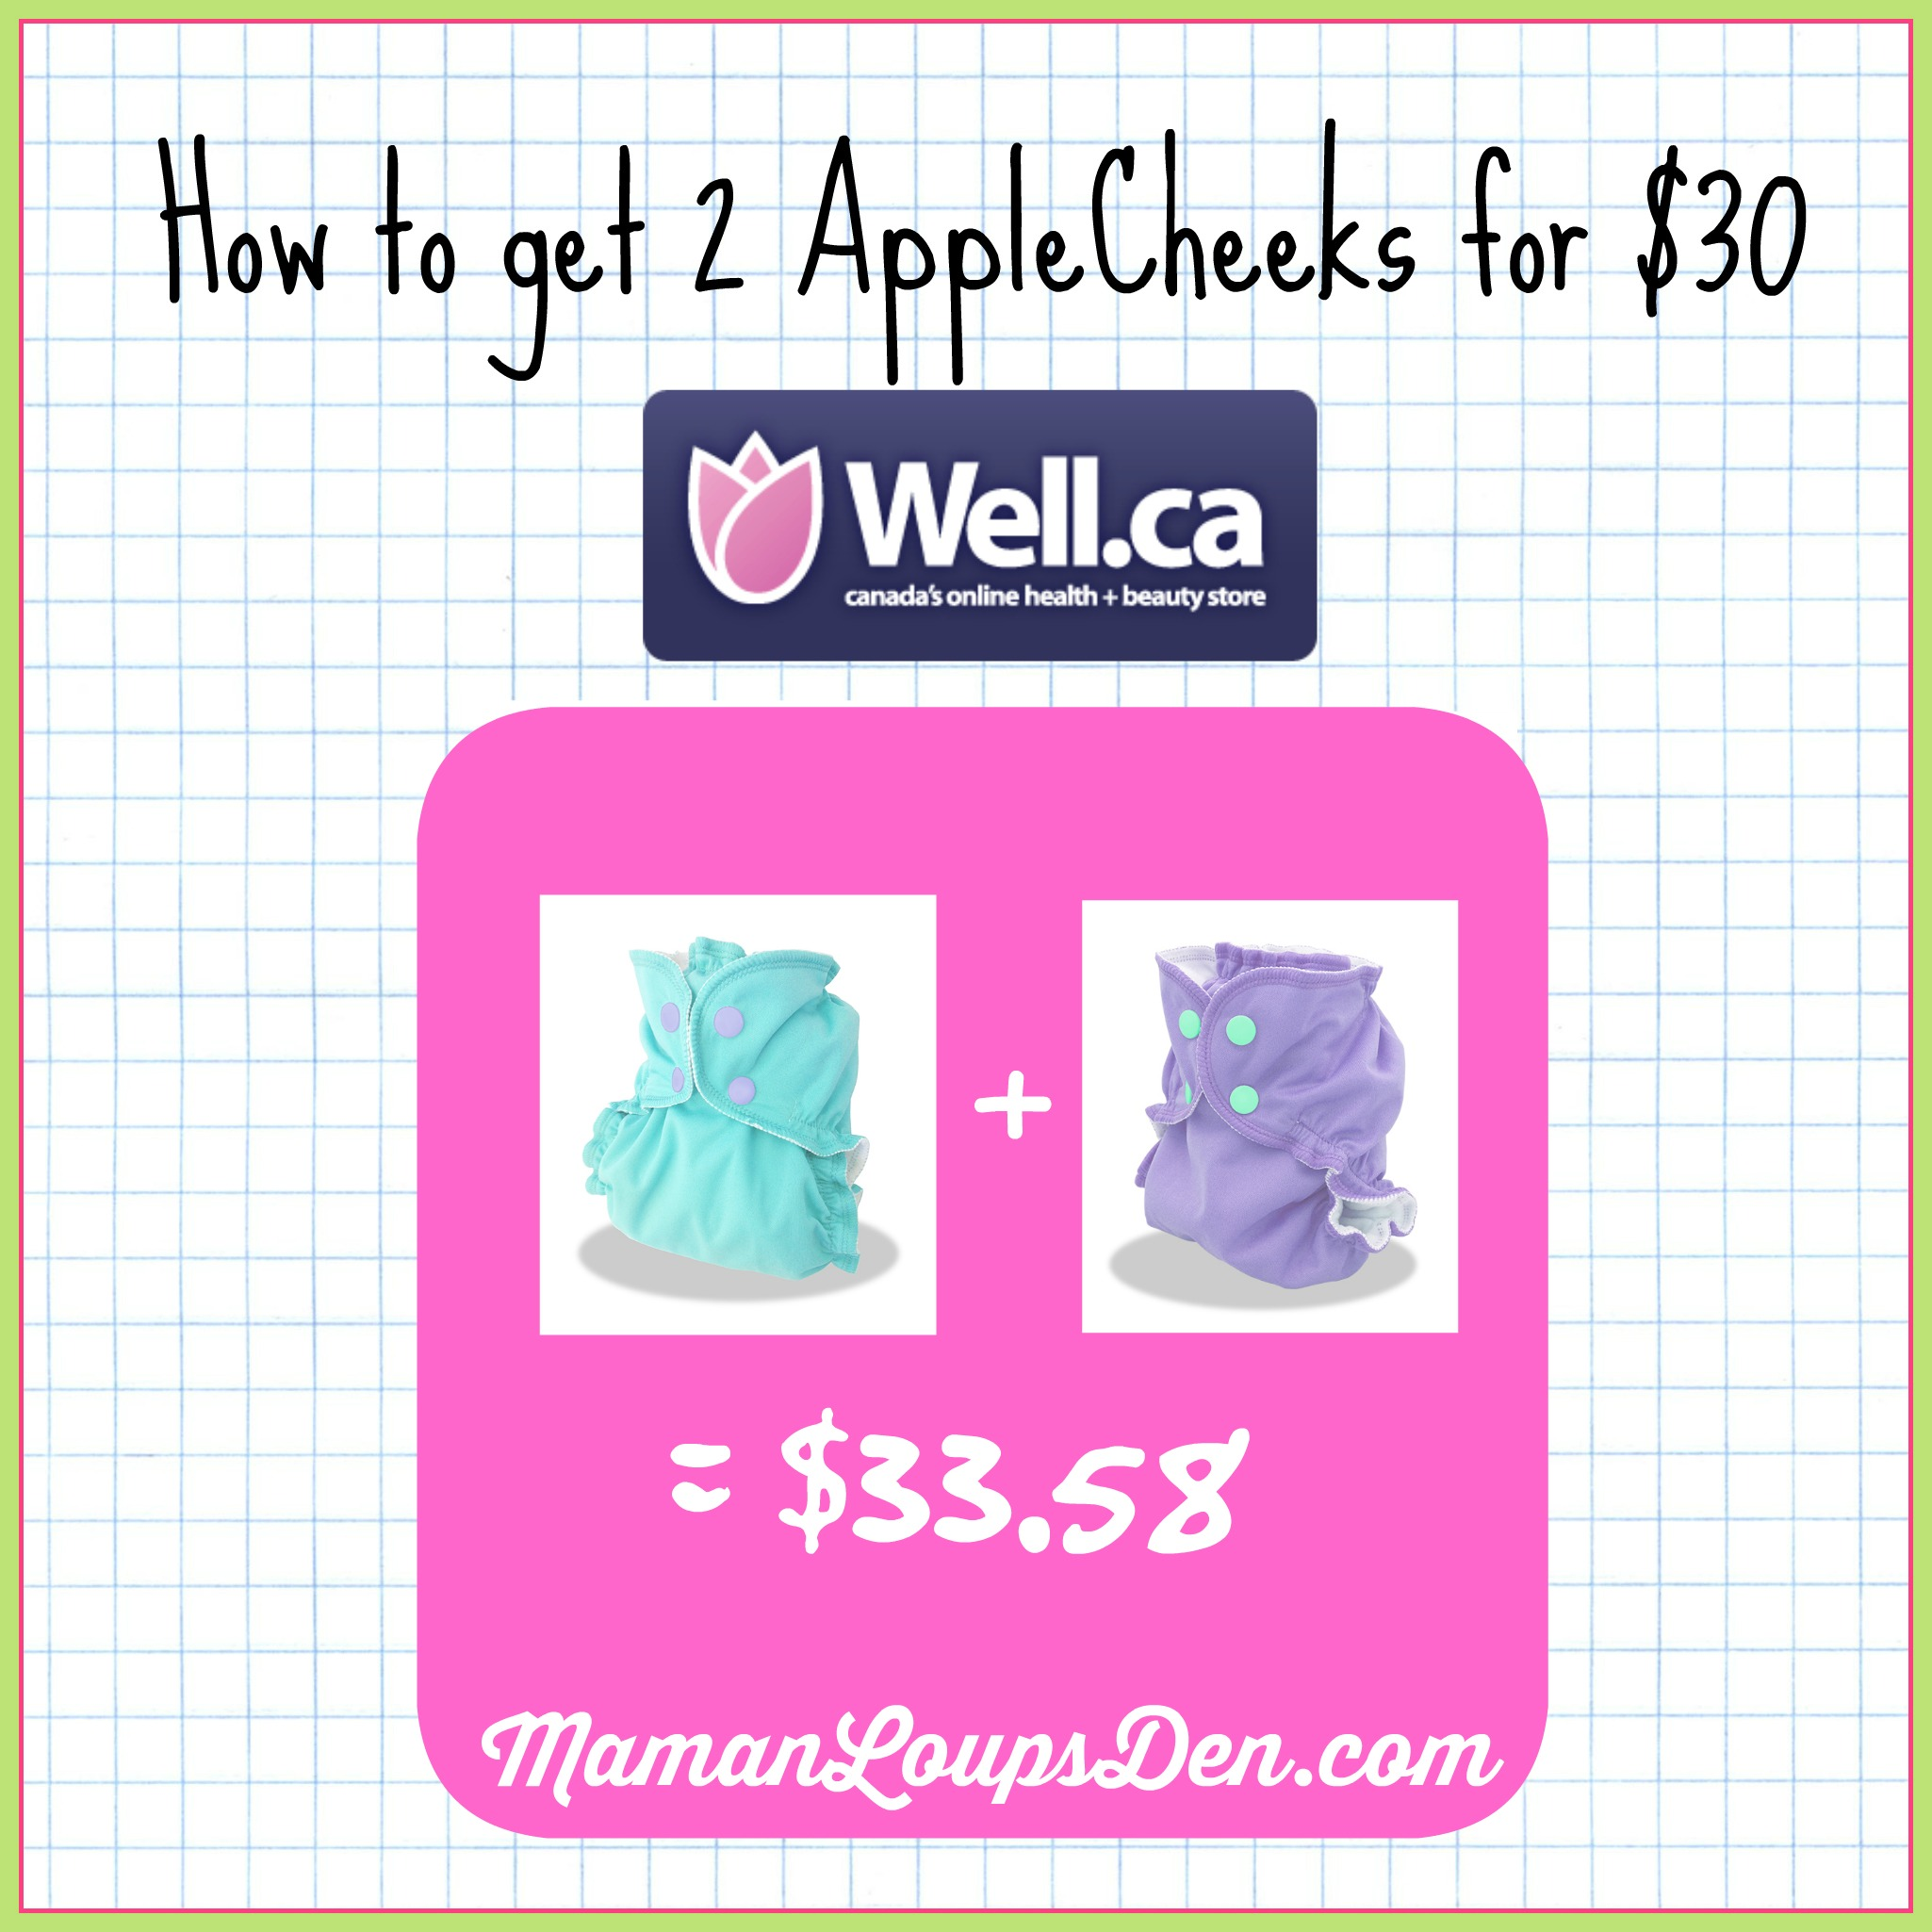 How to Get 2 AppleCheeks for $30